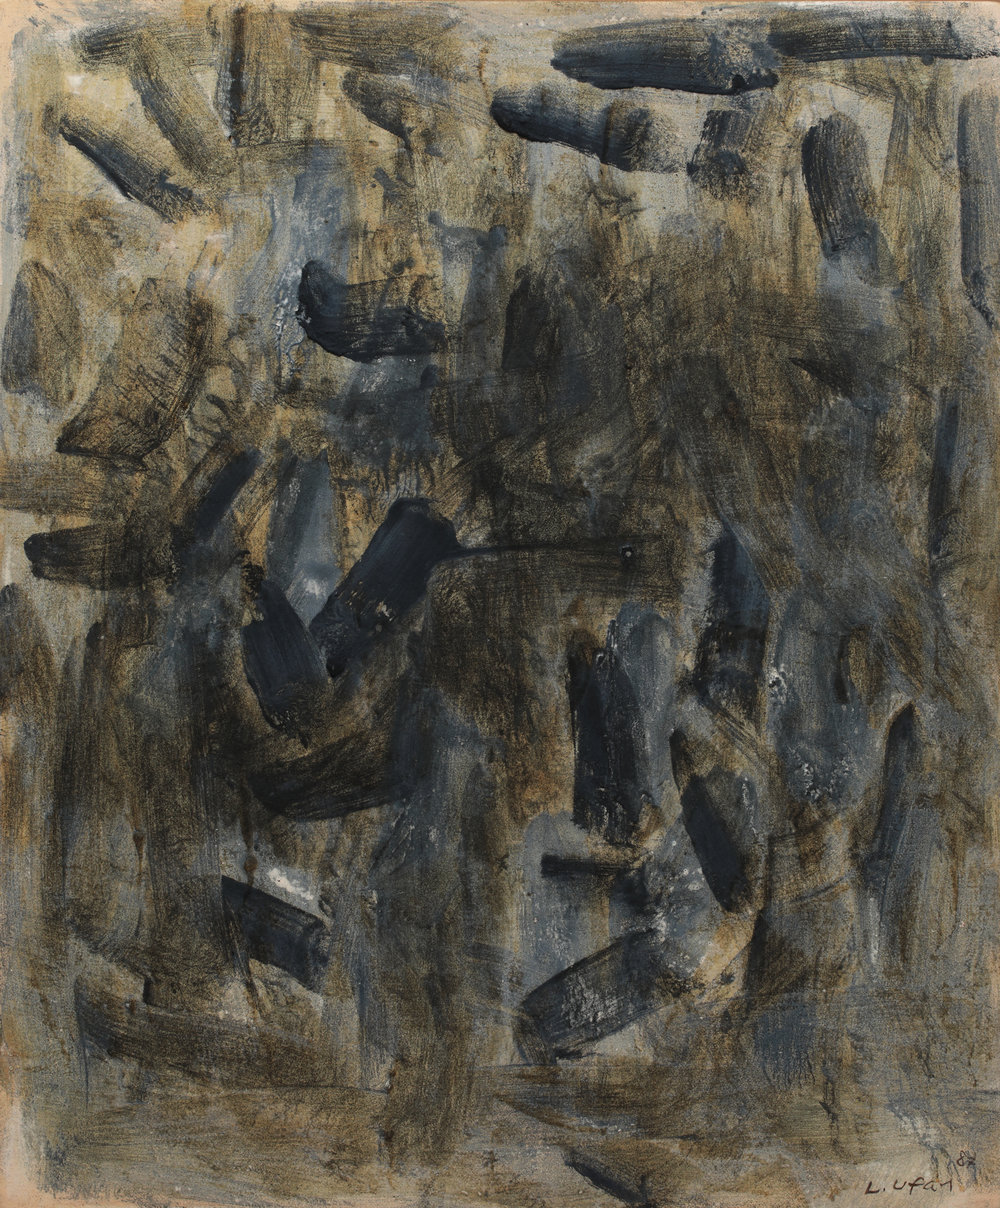 Lee Ufan, With Winds, oil and mineral pigments on canvas, 72.7x60cm, 1986-1987.JPG